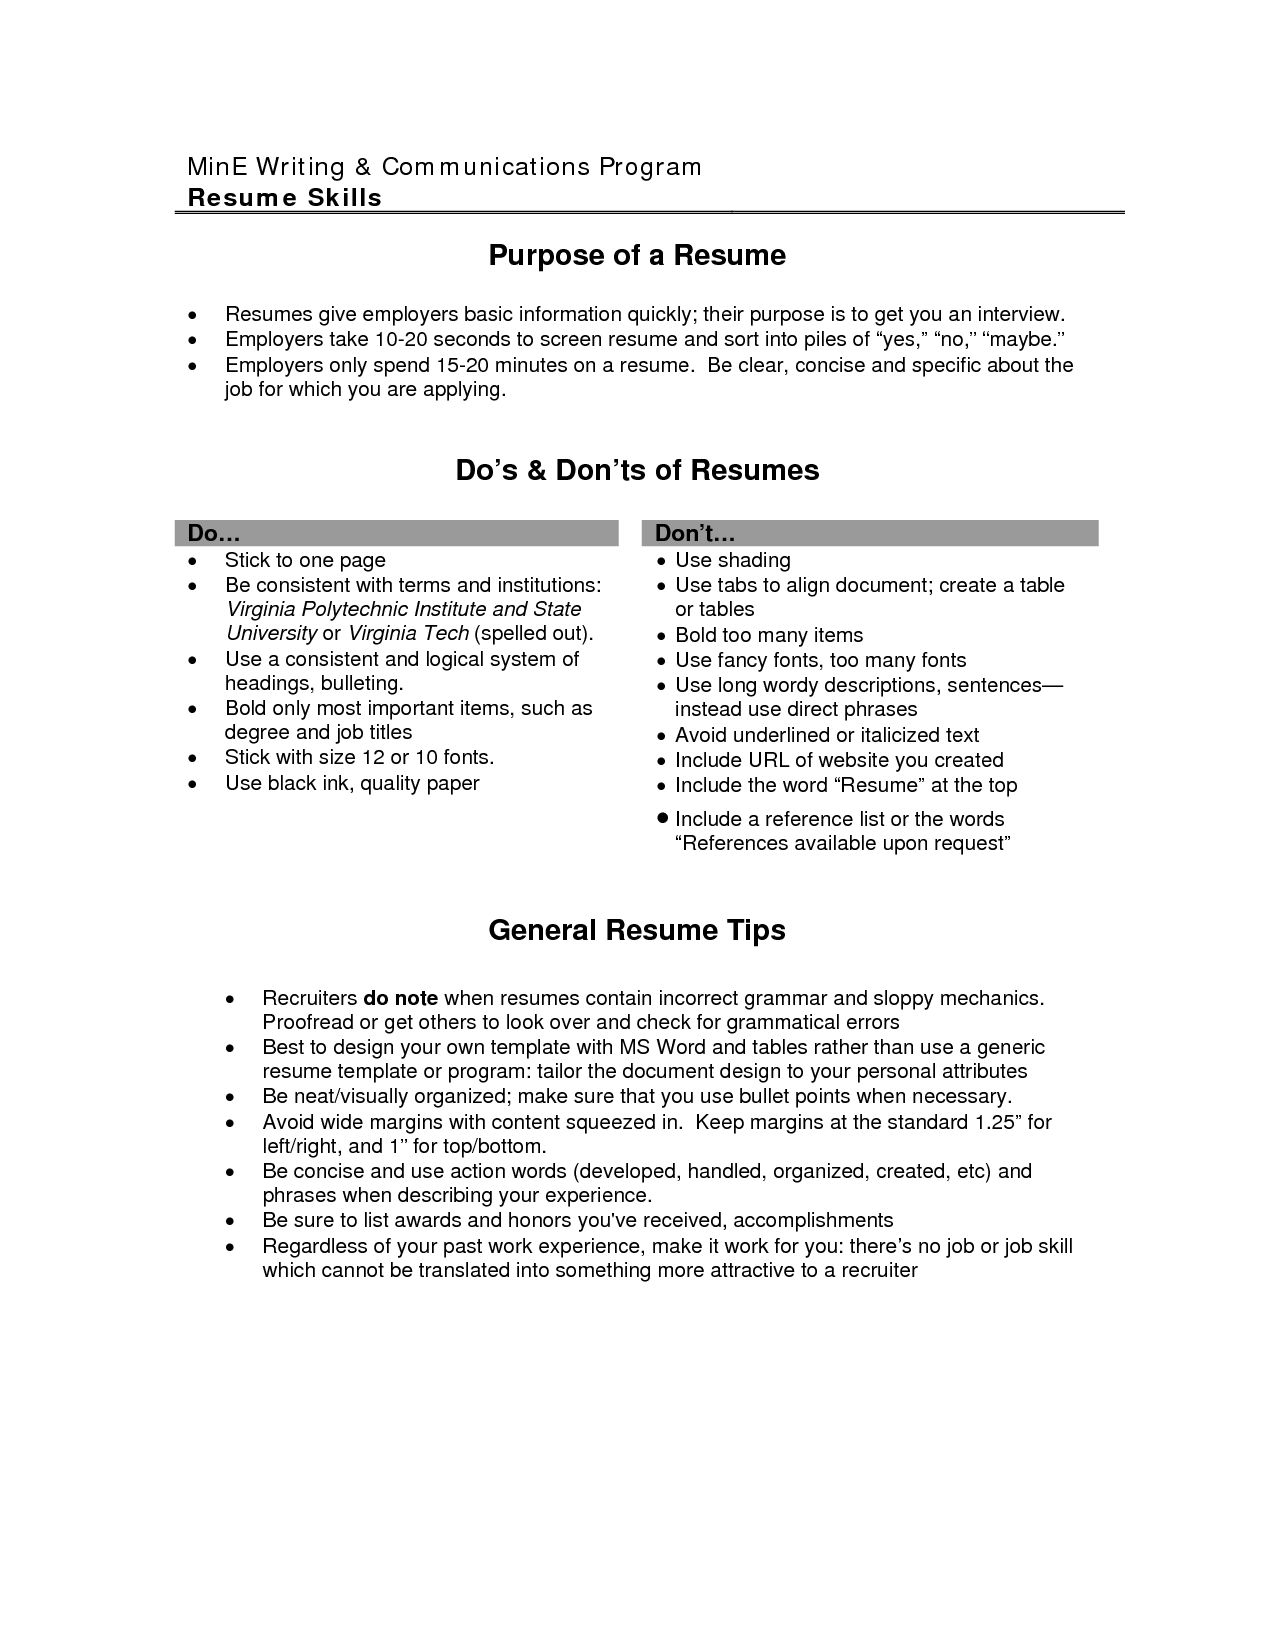 Examples Of Resume Objectives Top Resume Skills Entry Level Template The Create Your Building